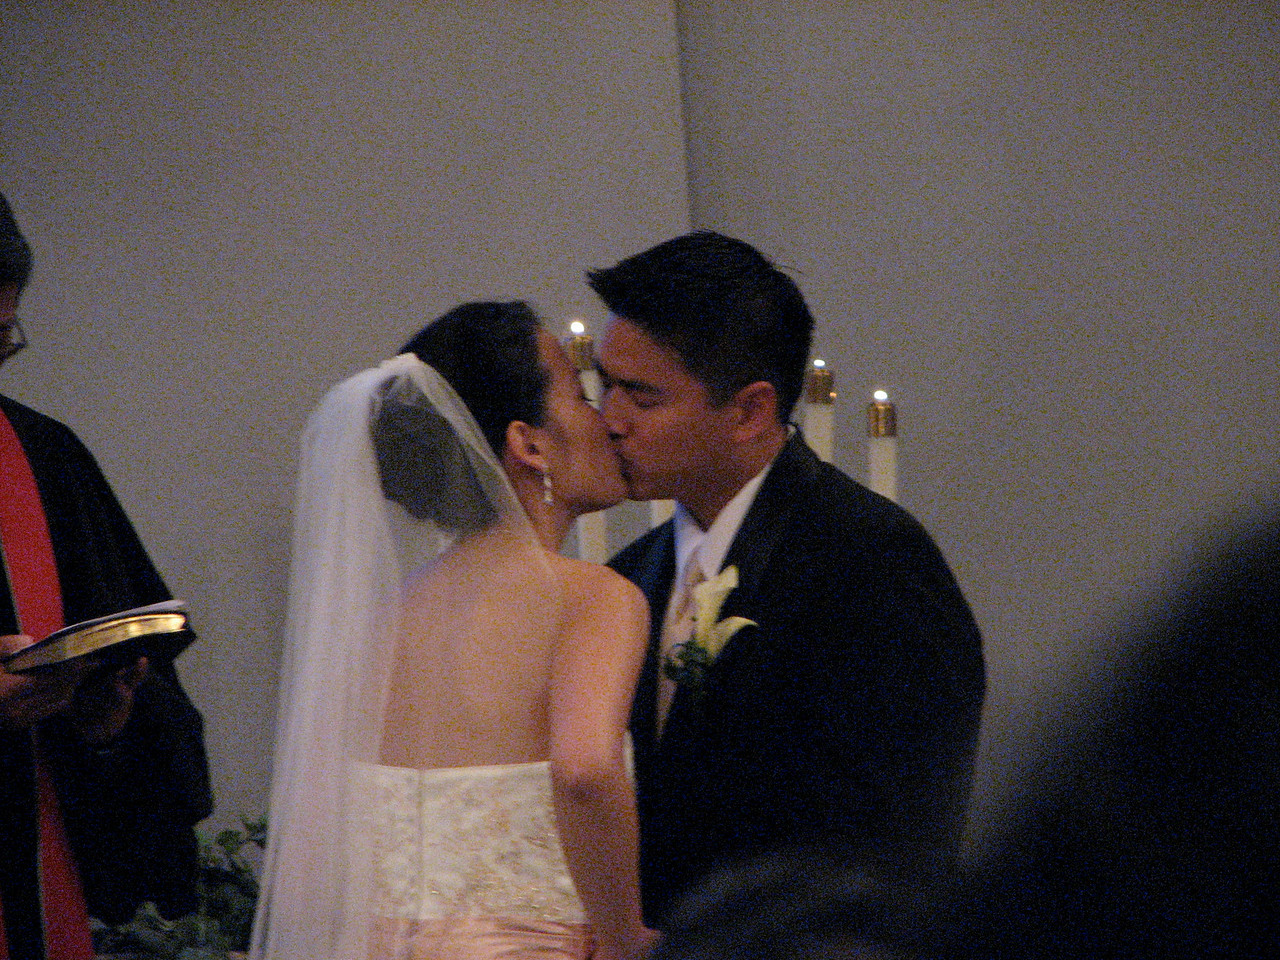 2007 06 09 Sat - The kiss during